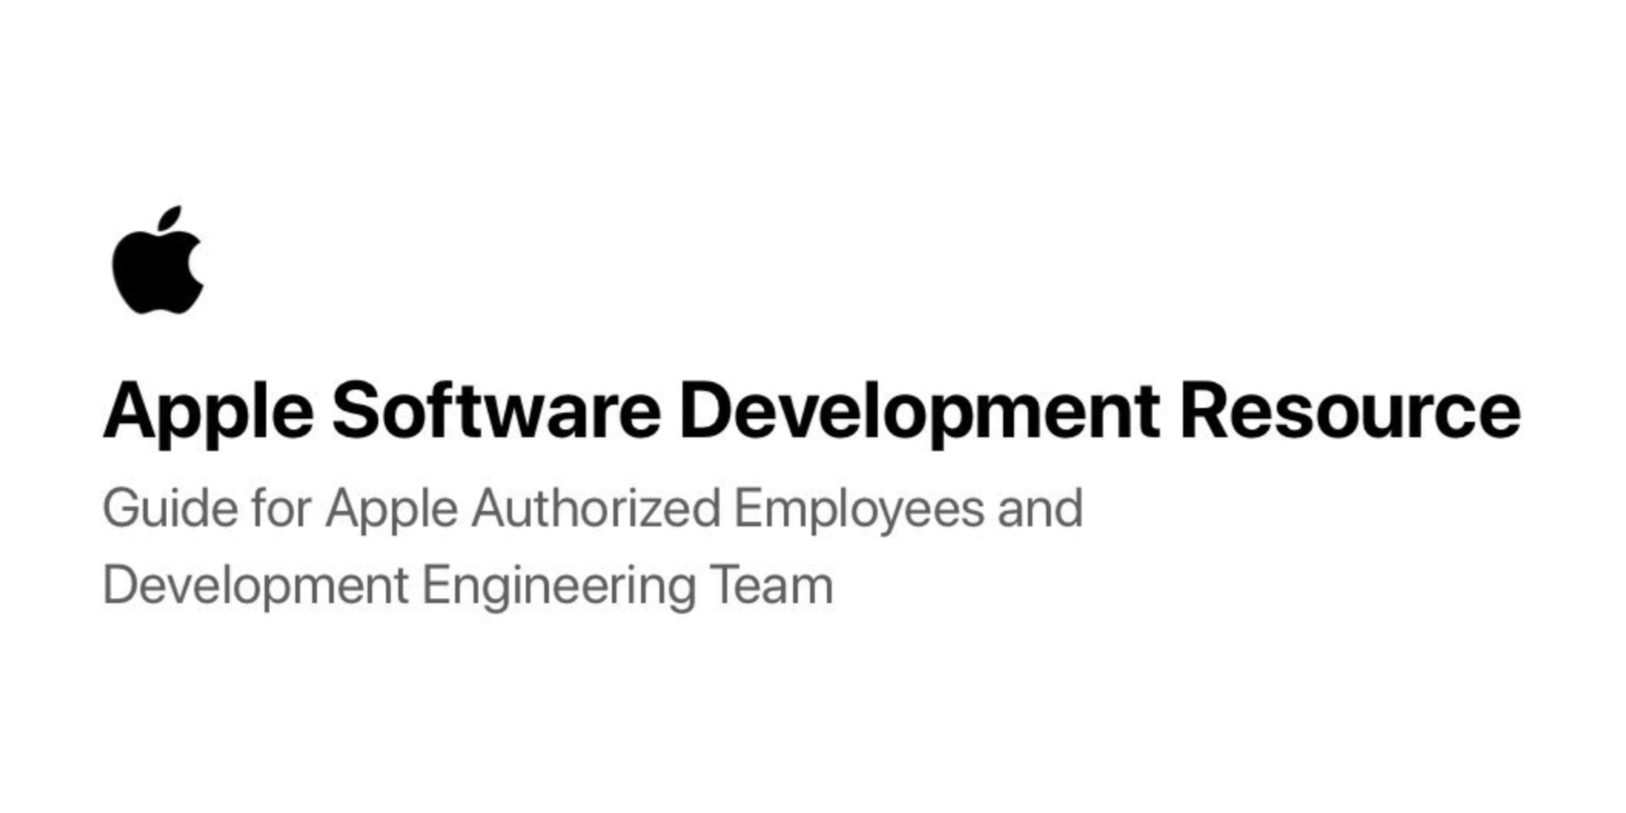 Probably faked document claims to reveal iOS 13 software